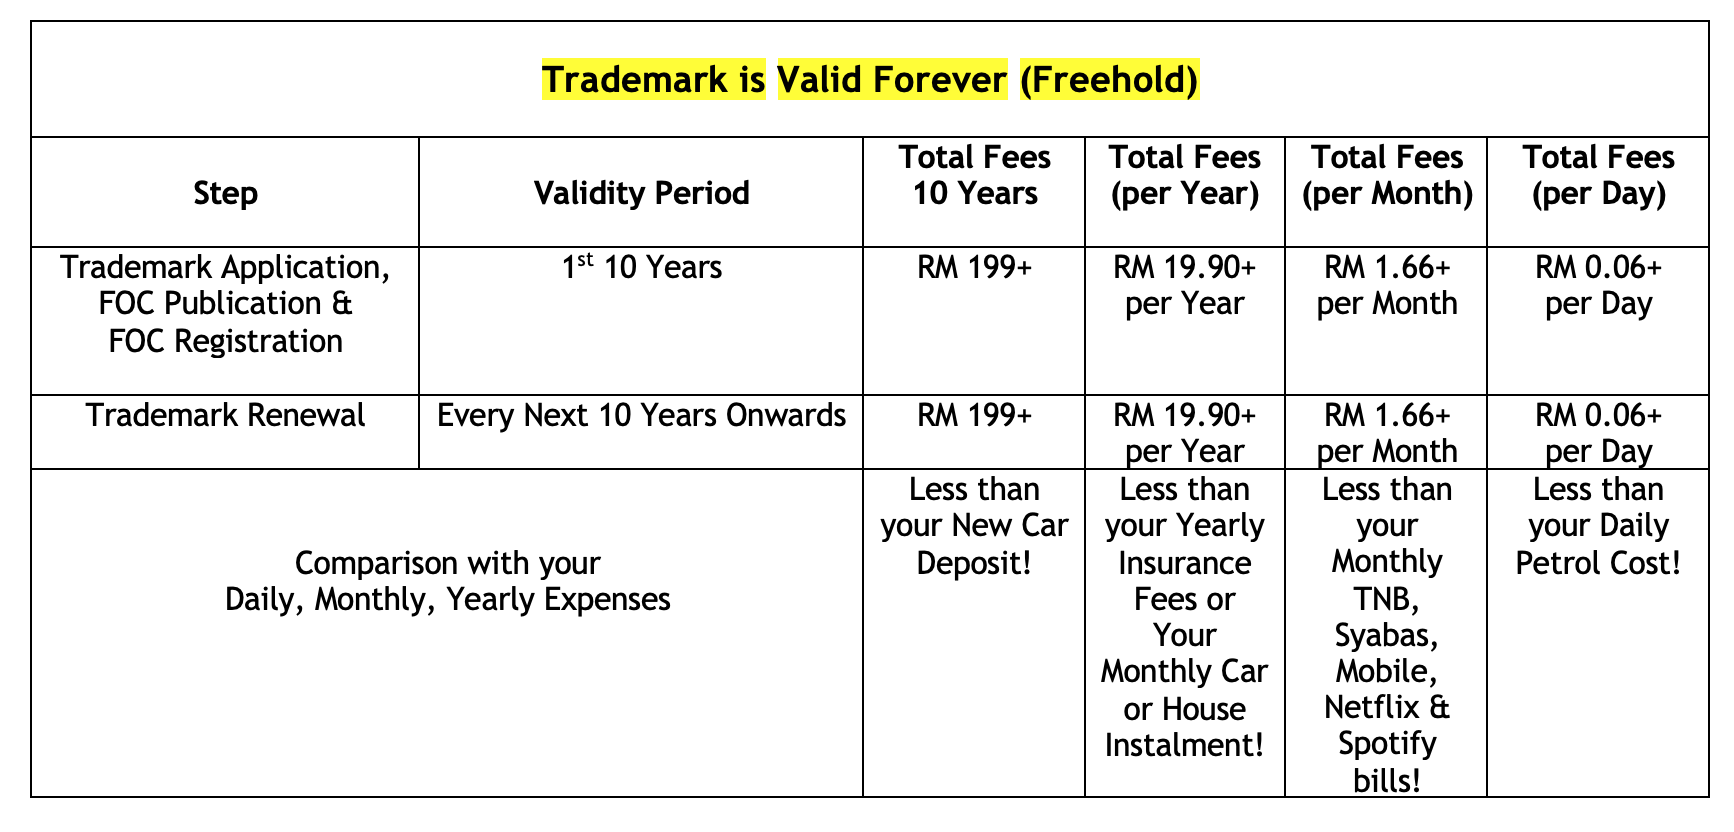 Trademark Yearly, Monthly, Daily Cost Comparison